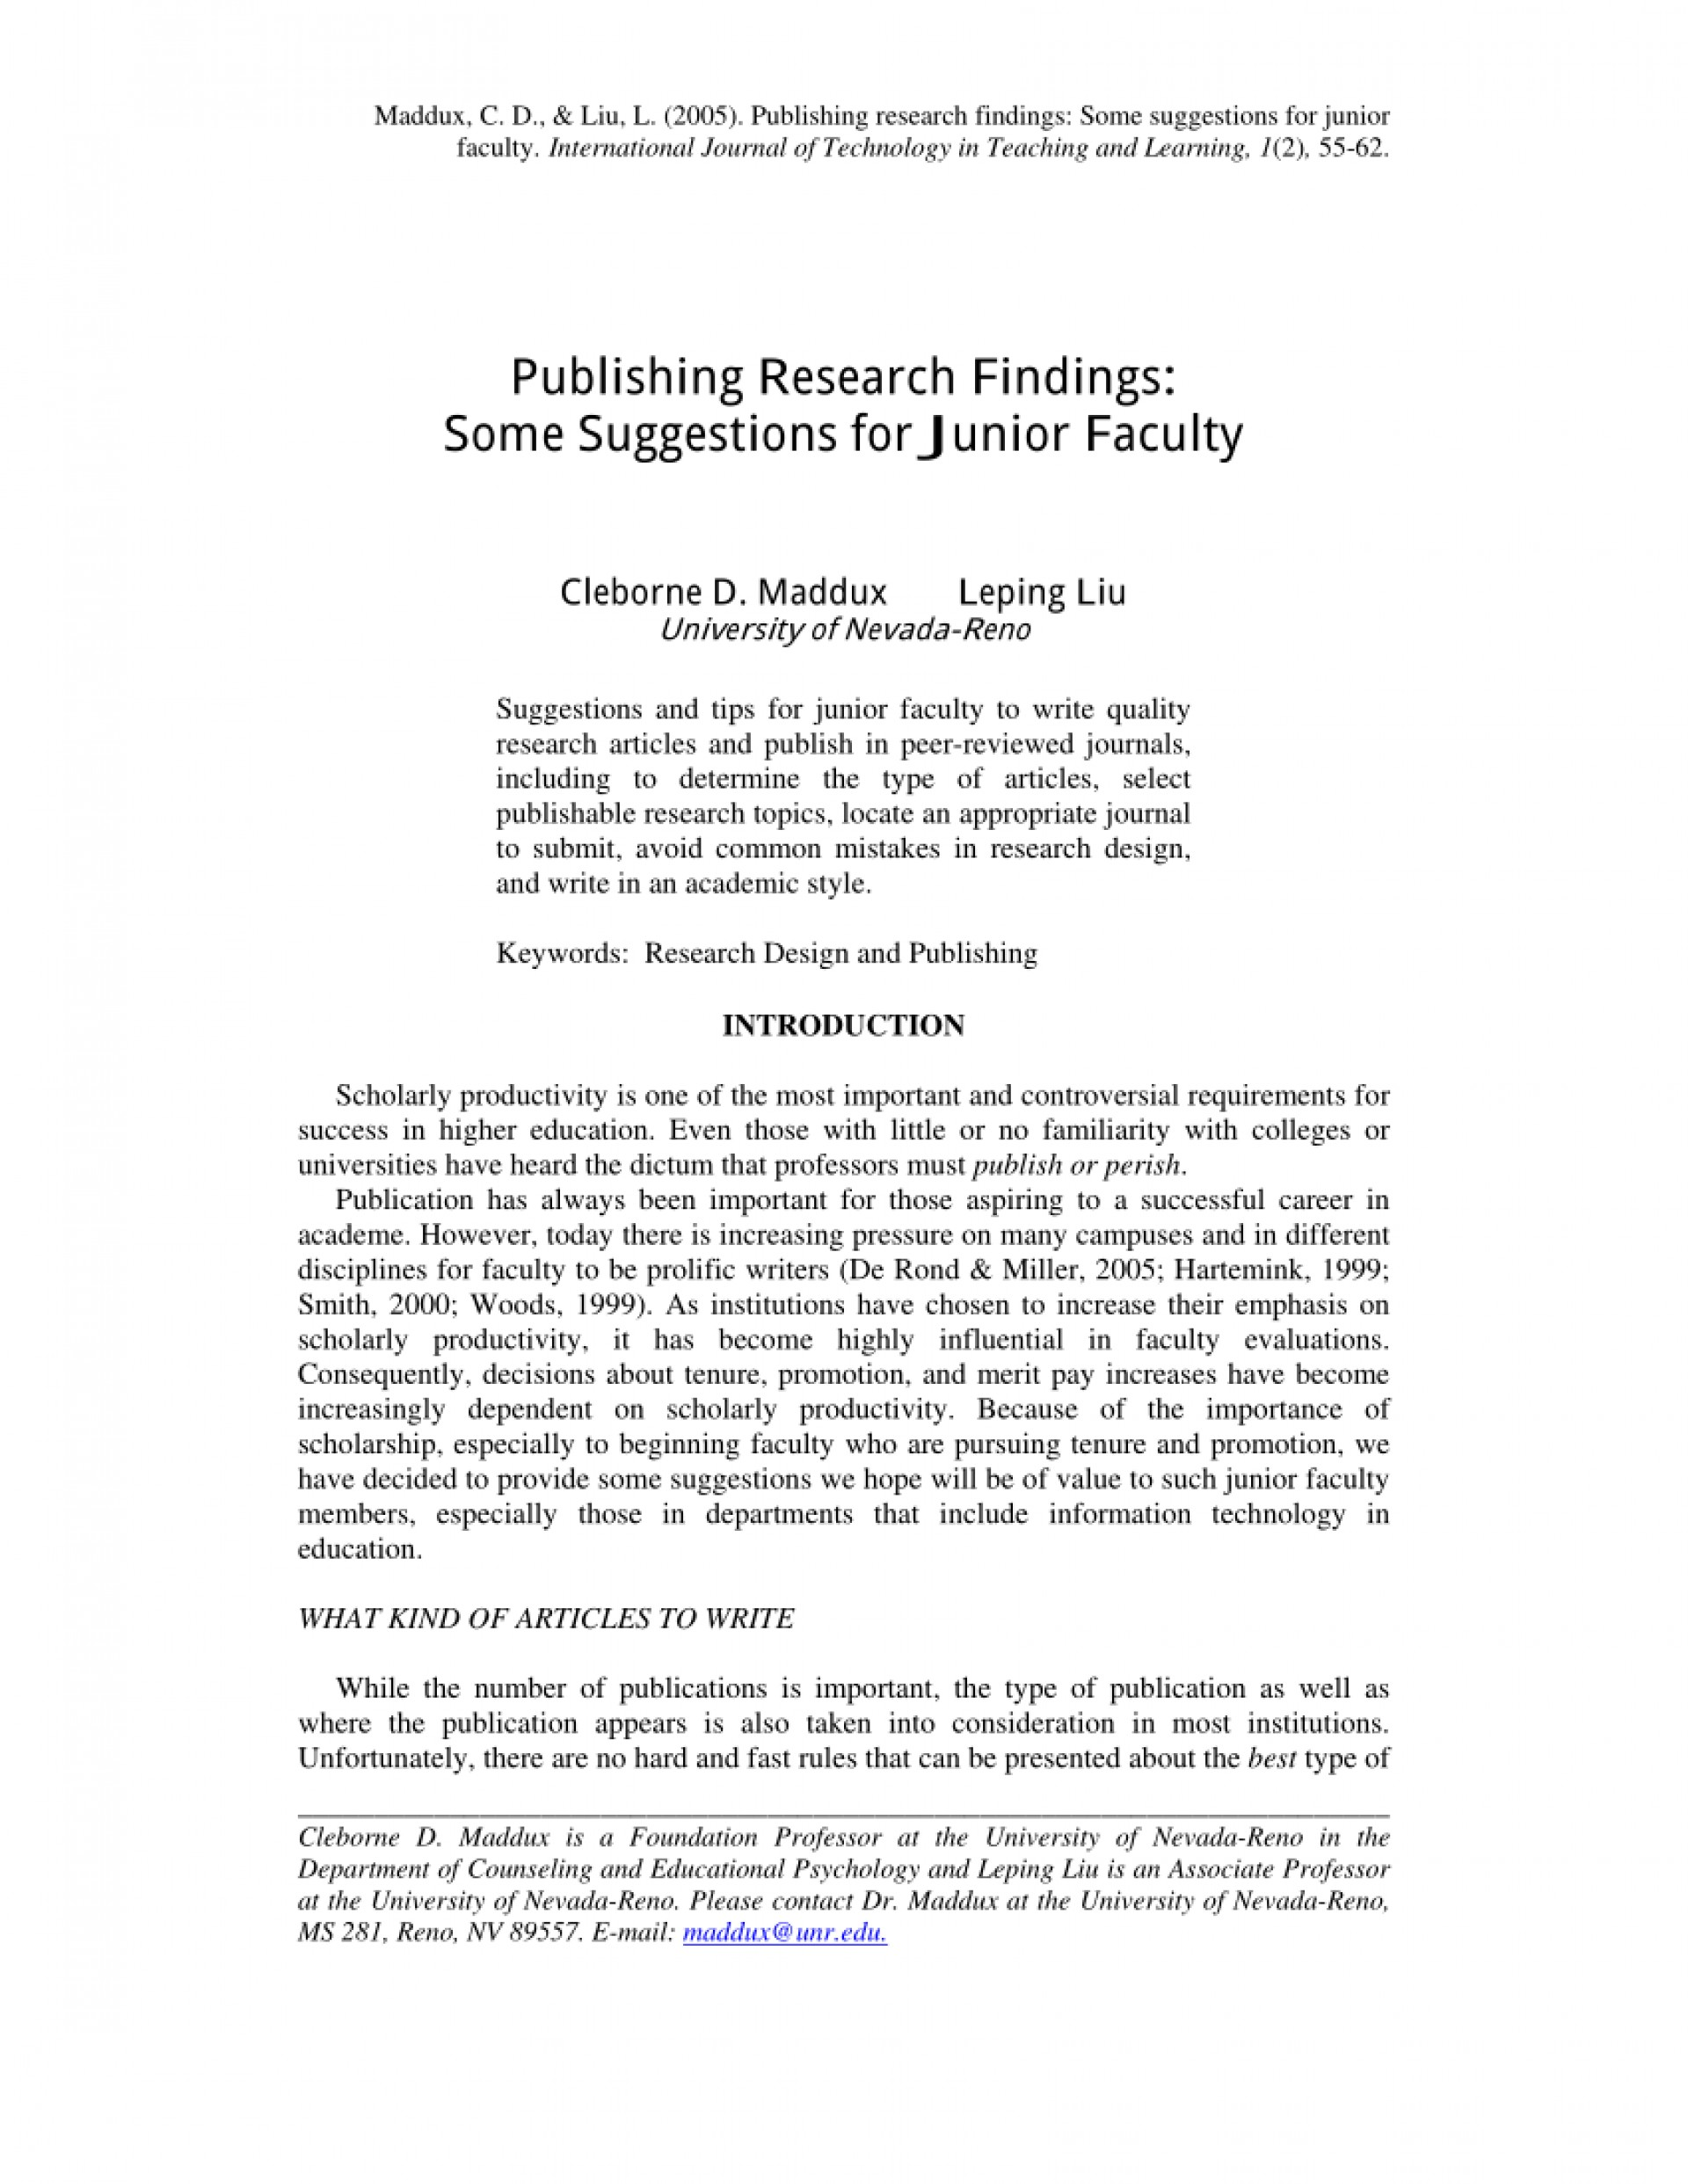 001 How To Publish Research Paper Without Professor Striking A 1920